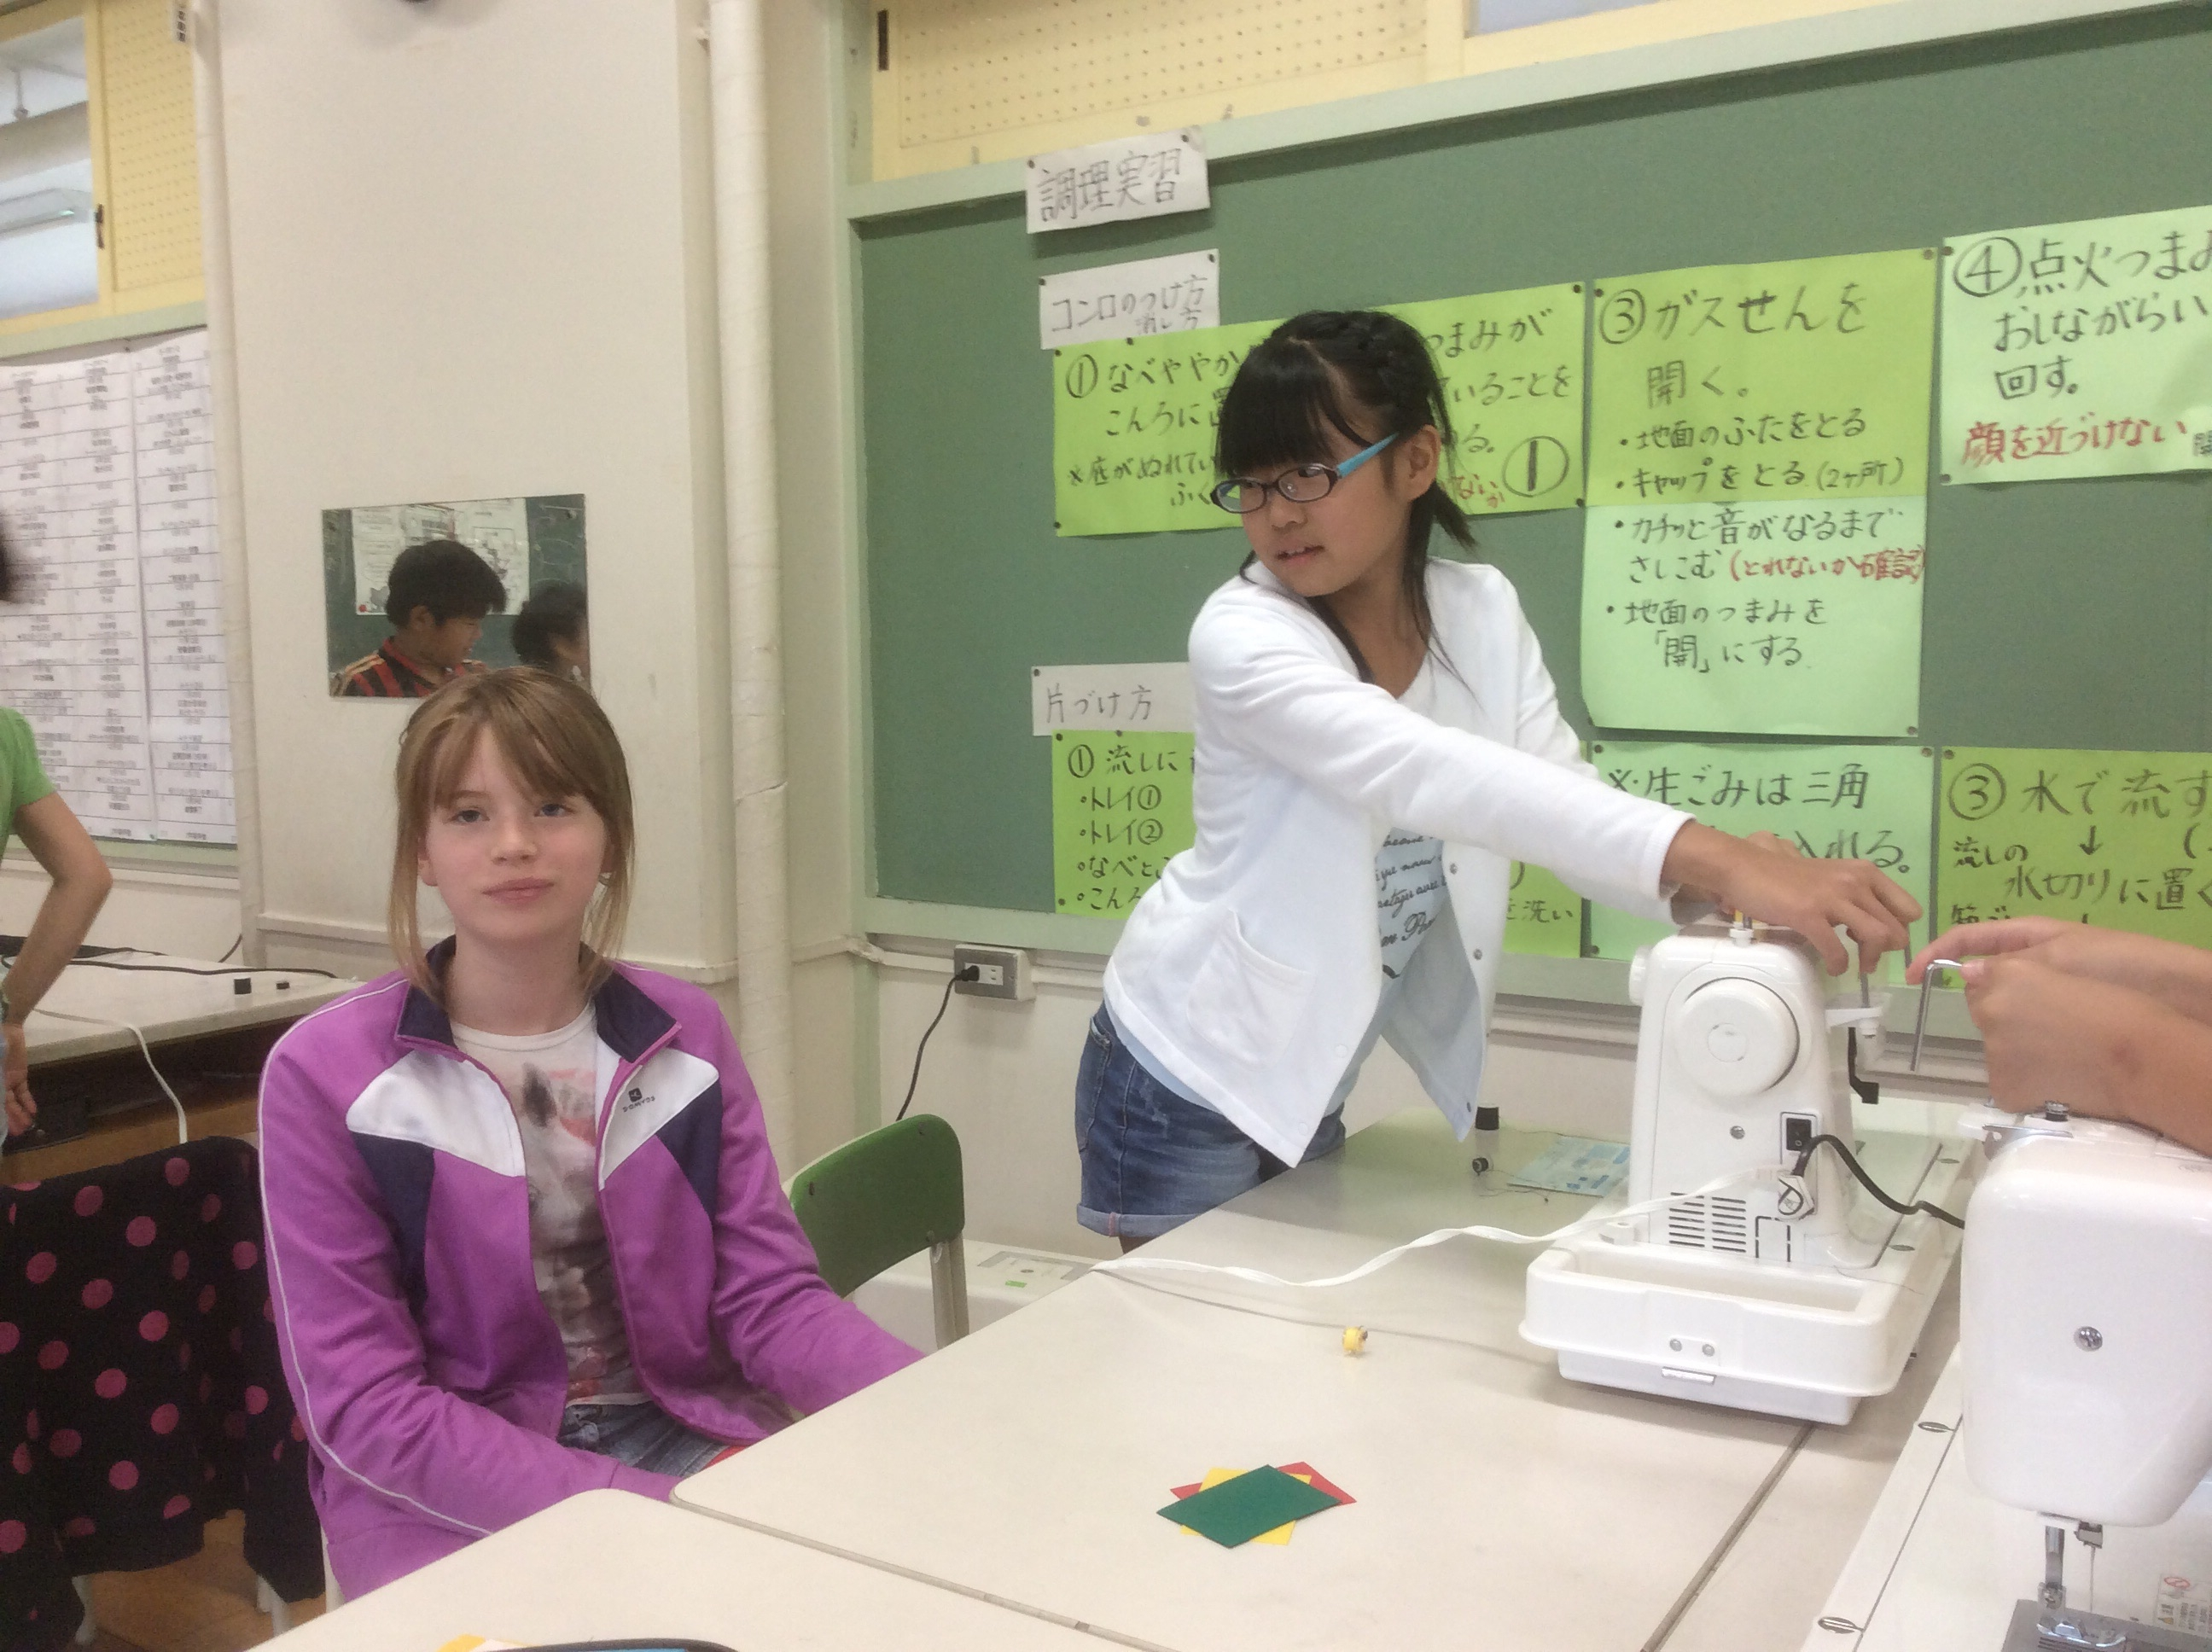 Sewing class in Japan